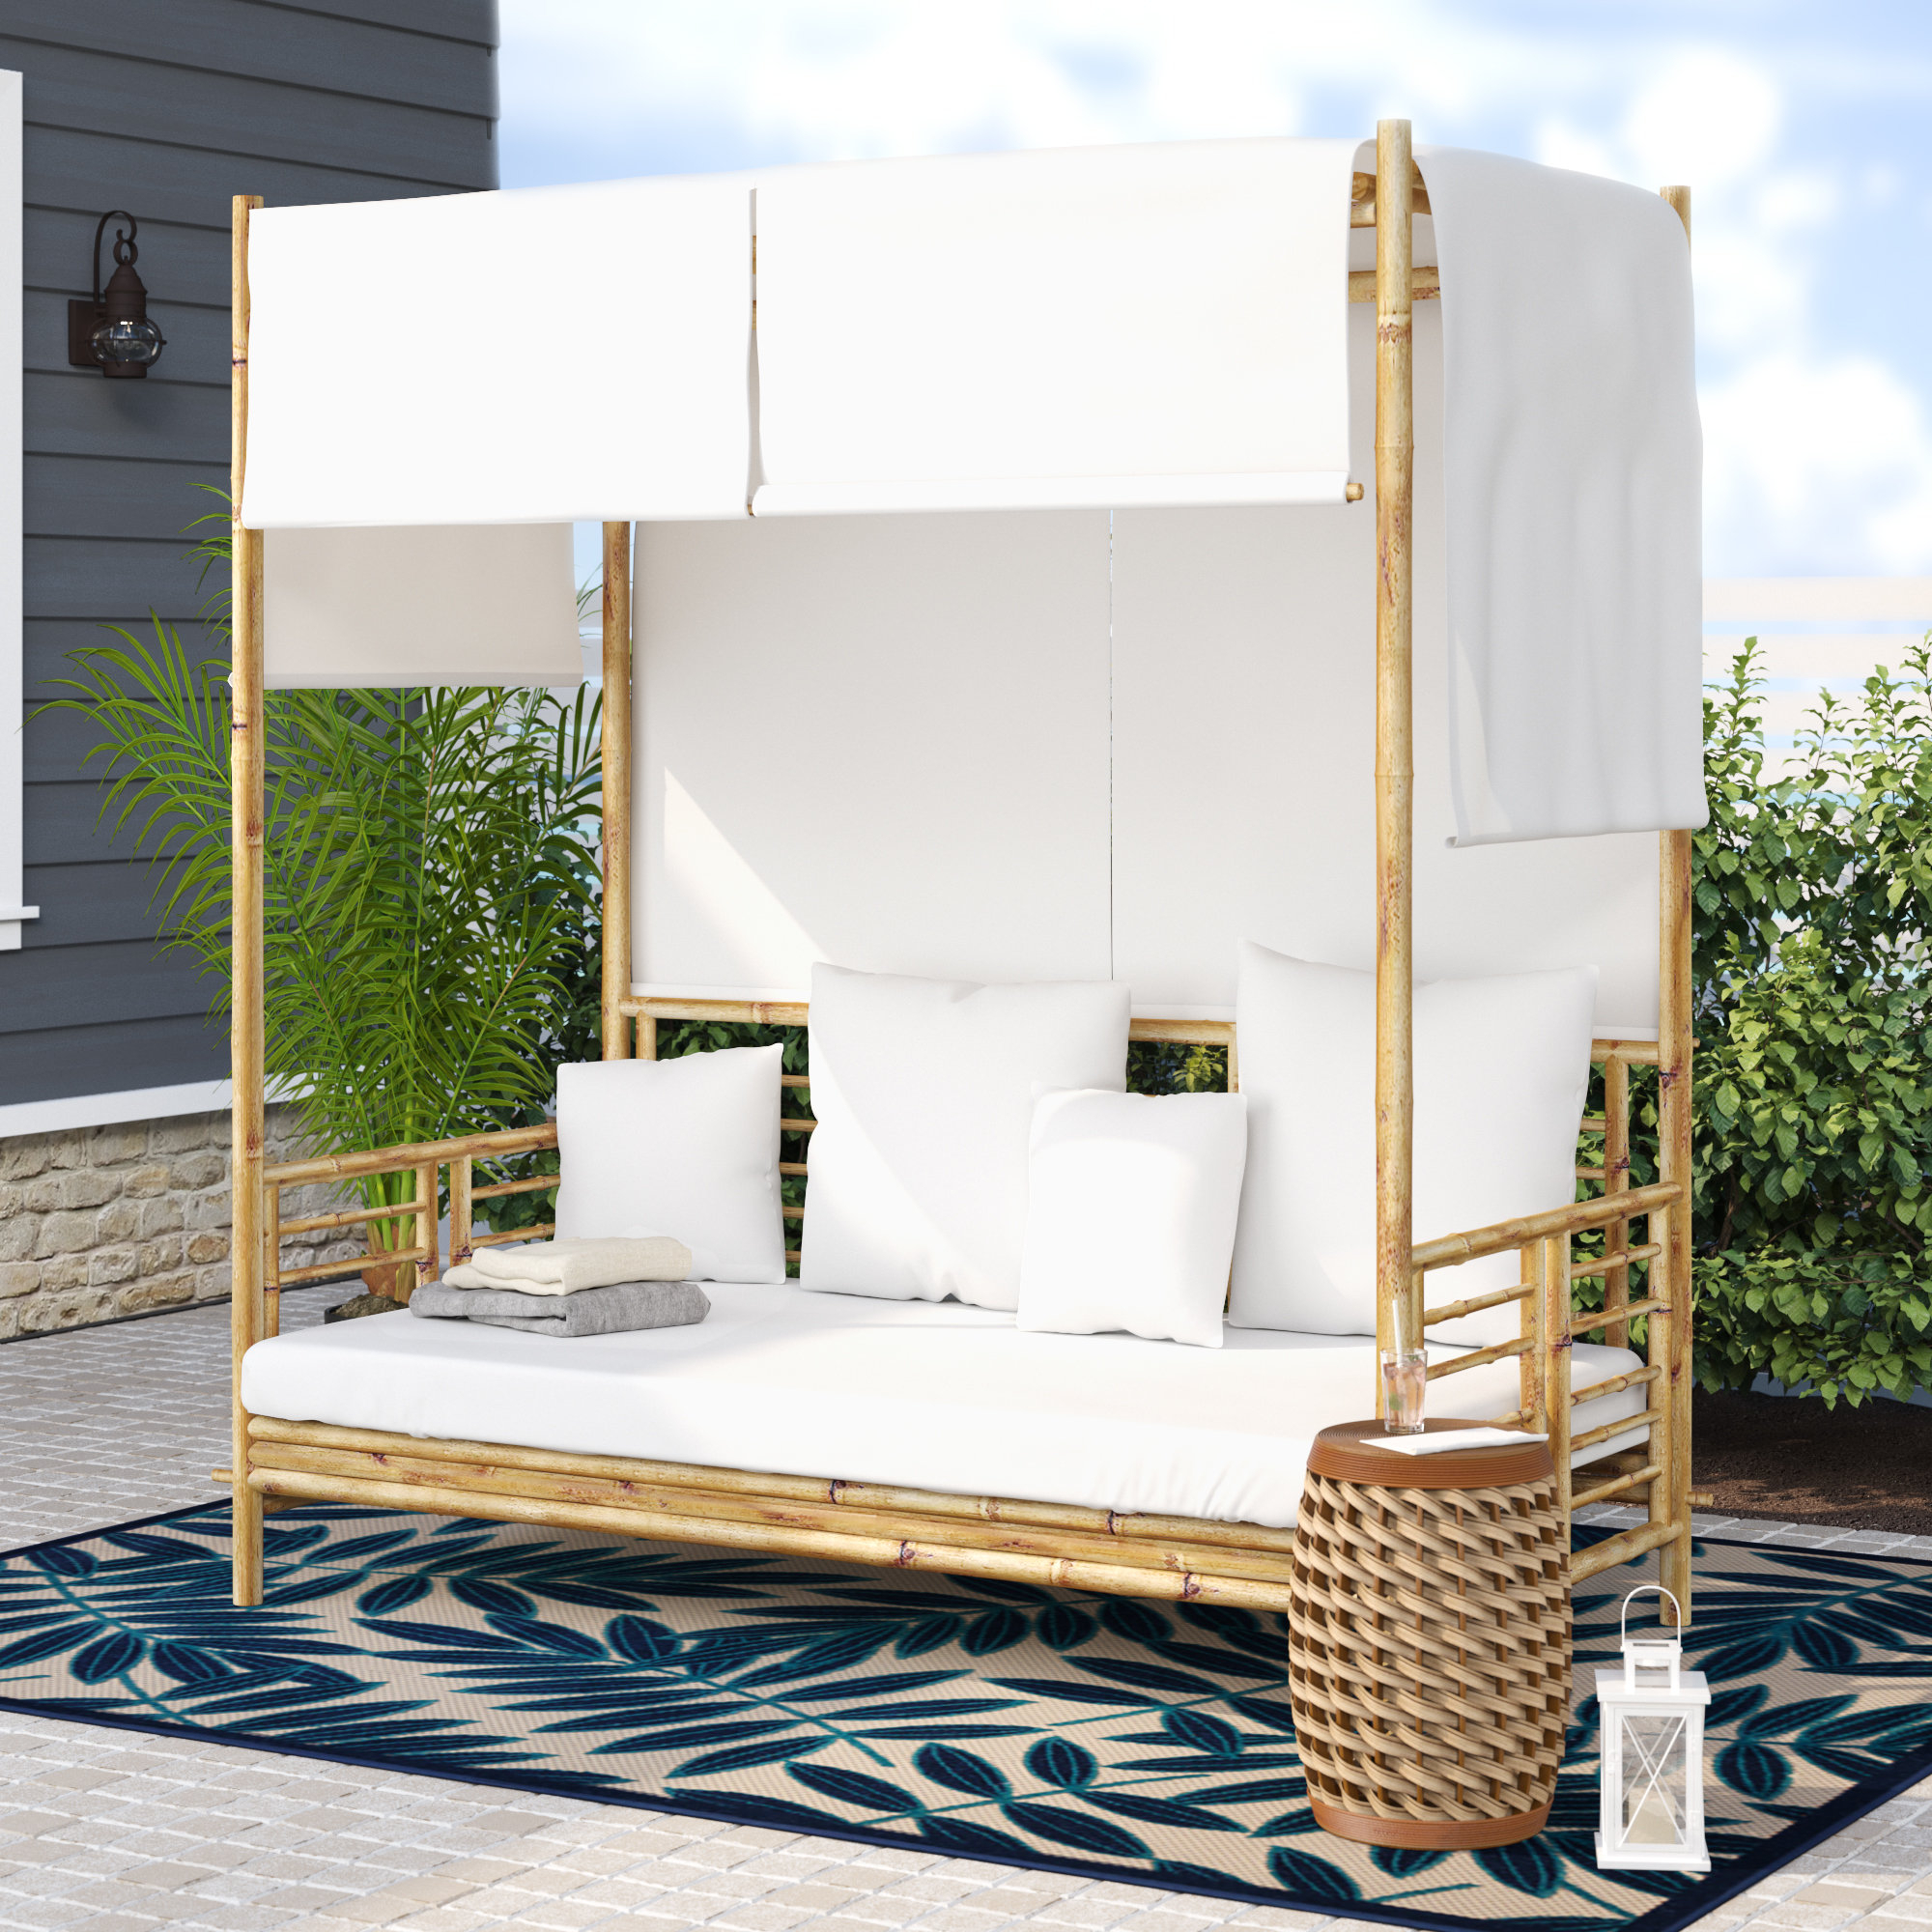 Grosvenor Bamboo Patio Daybeds With Cushions With Regard To Most Current Bamboo Daybed With Canopy – Robotena (View 10 of 20)